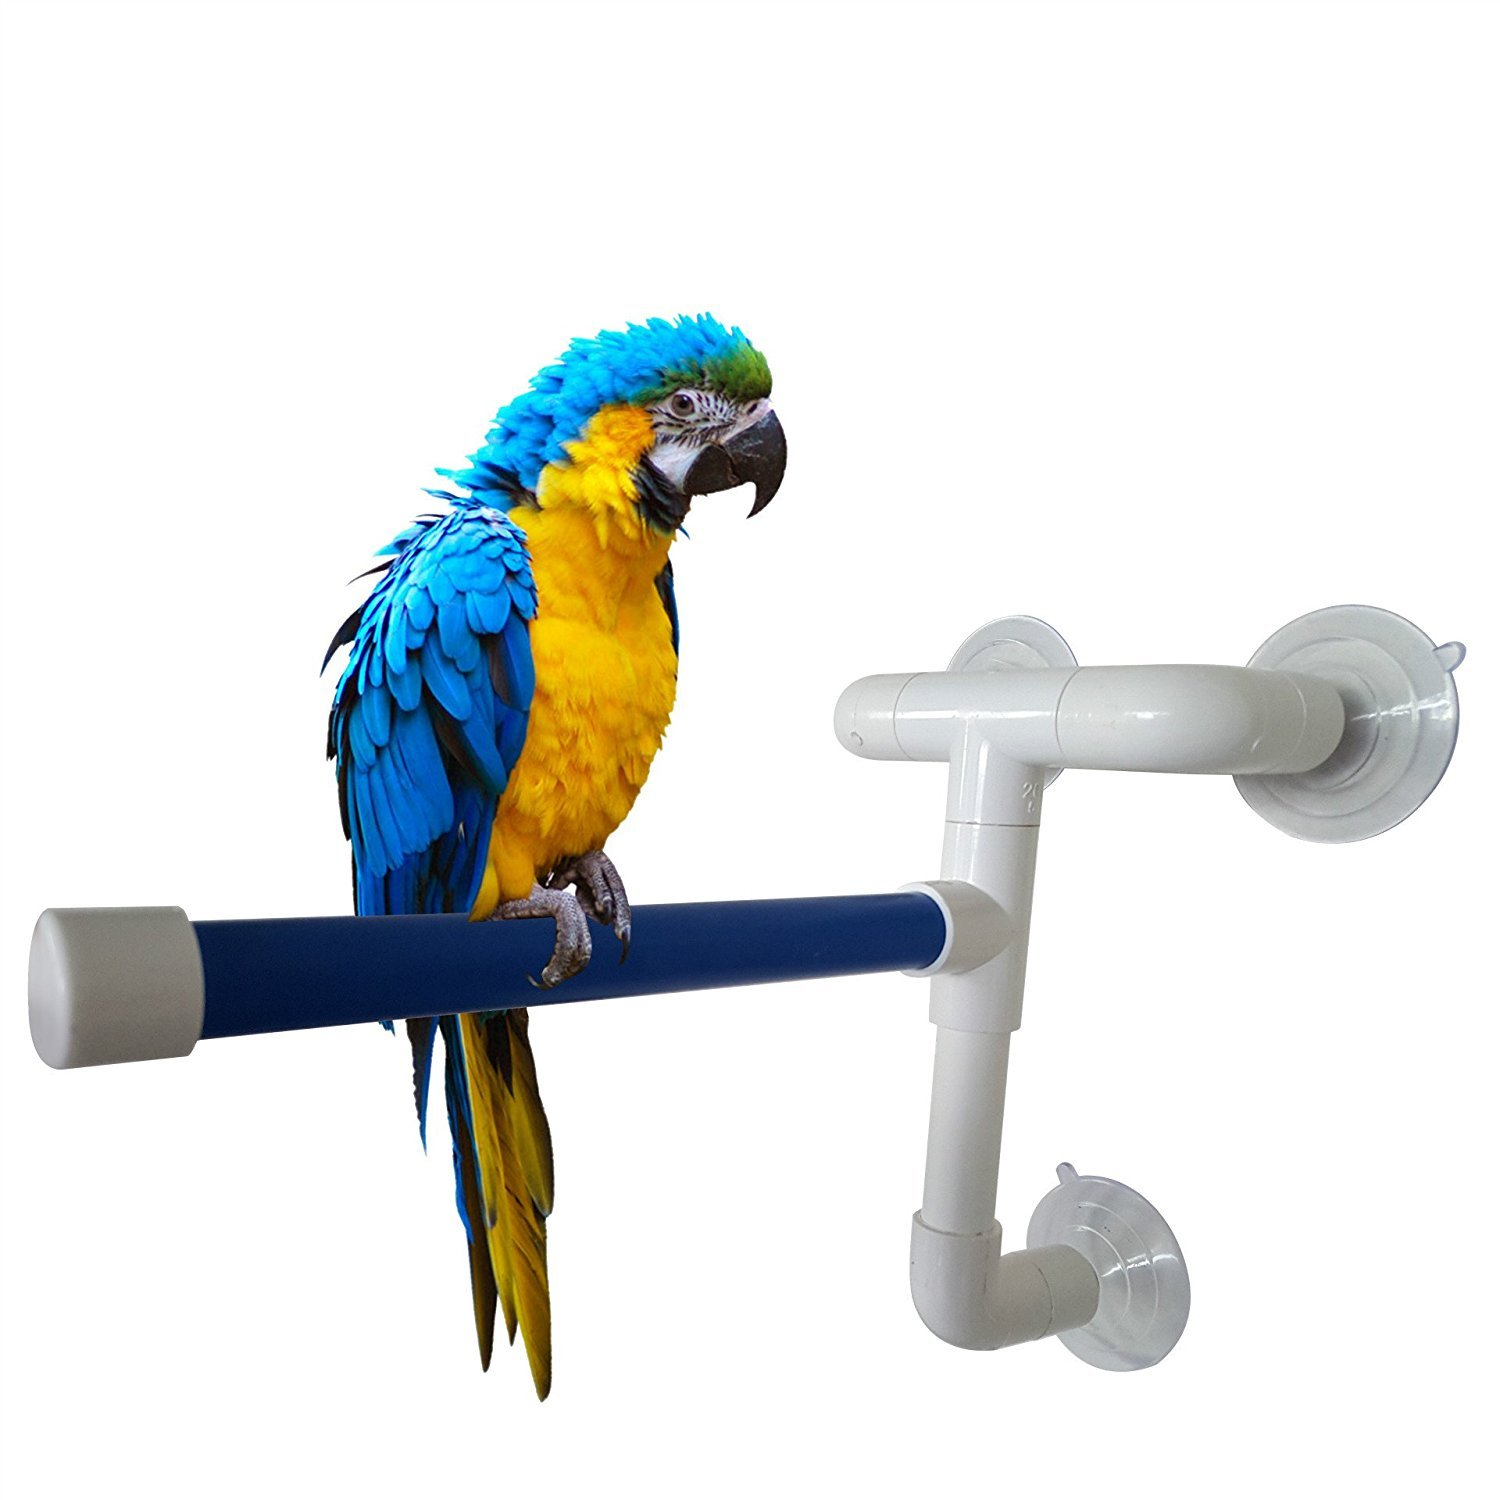 Hypeety Bird Parrot Stand Perch Shower Perch Standing Toy Portable Suction Cup Parrot Bath Stands Suppllies Holder Platform Parakeet Window Wall Hanging Play 4 Suction Cups